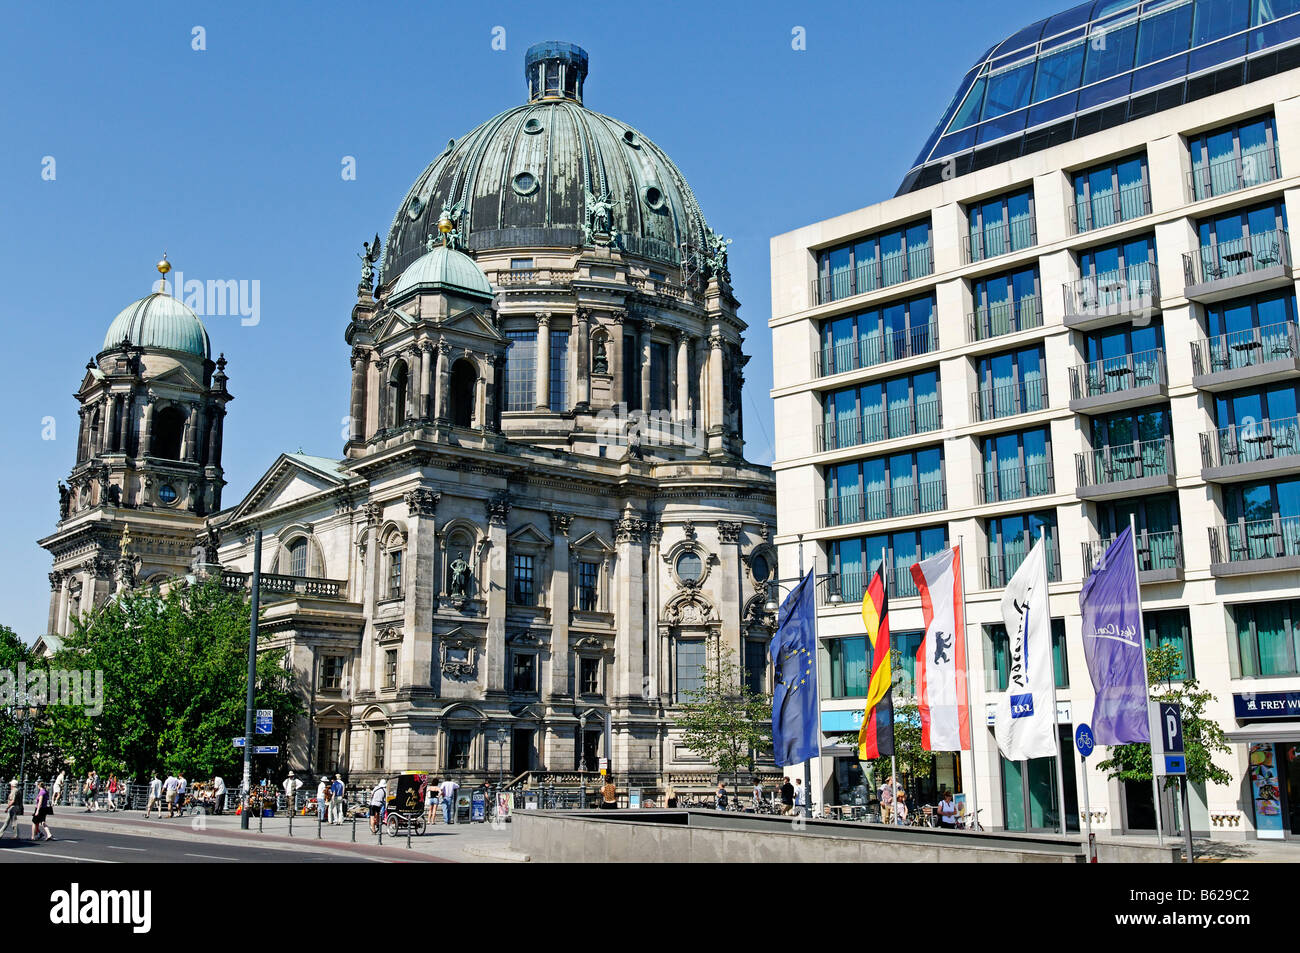 Radisson SAS Hotel, Berliner Dom Cathedral in the back, Berlin, Germany, Europe - Stock Image